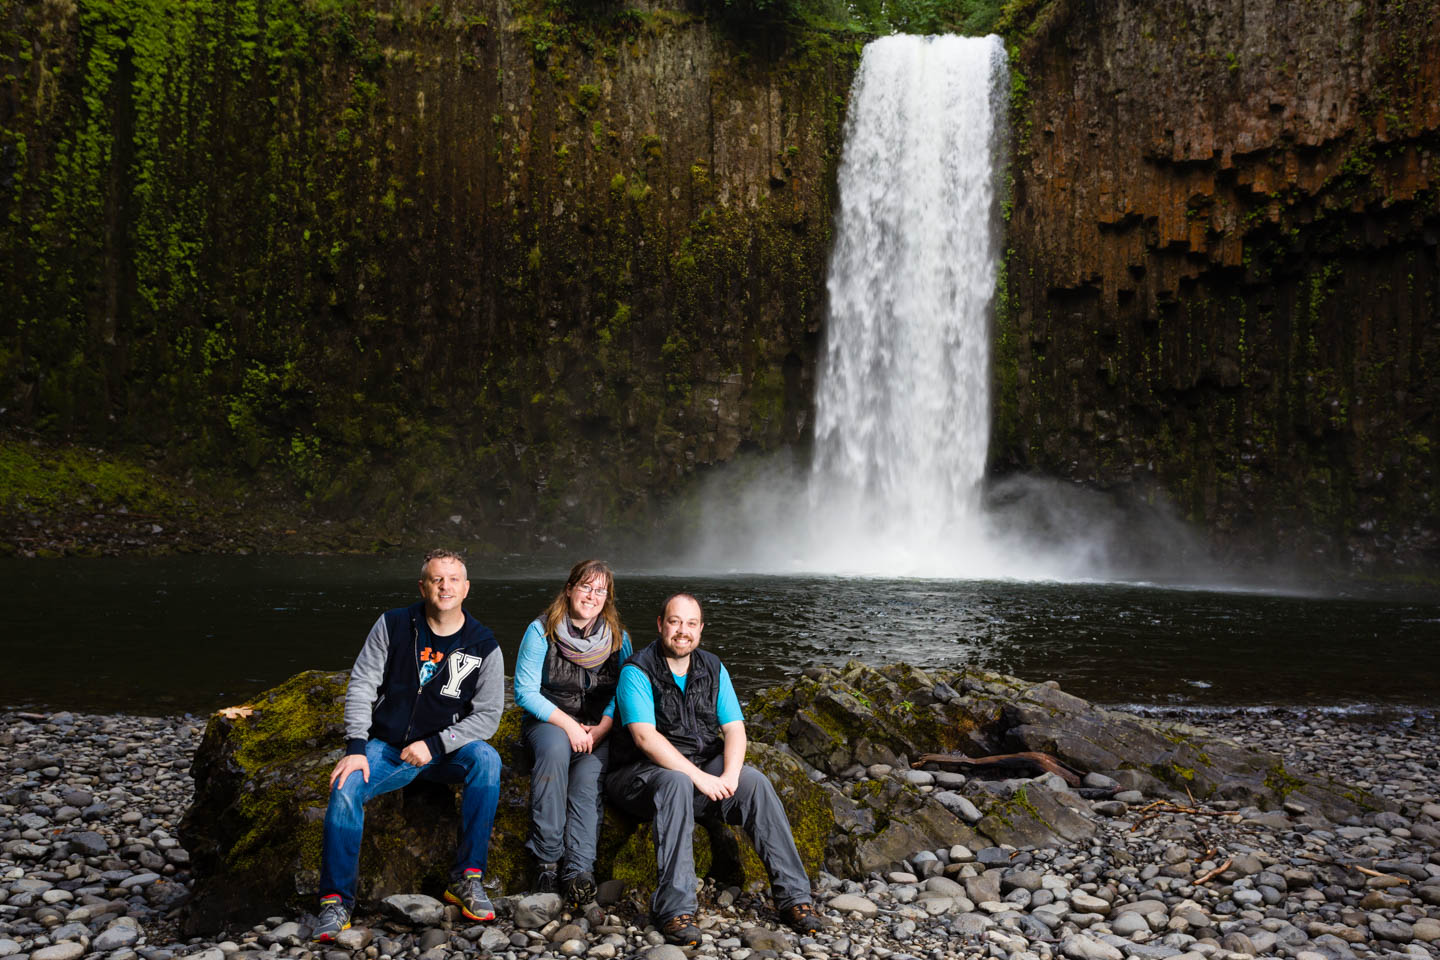 Hanging with my photo buddies at Abiqua Falls